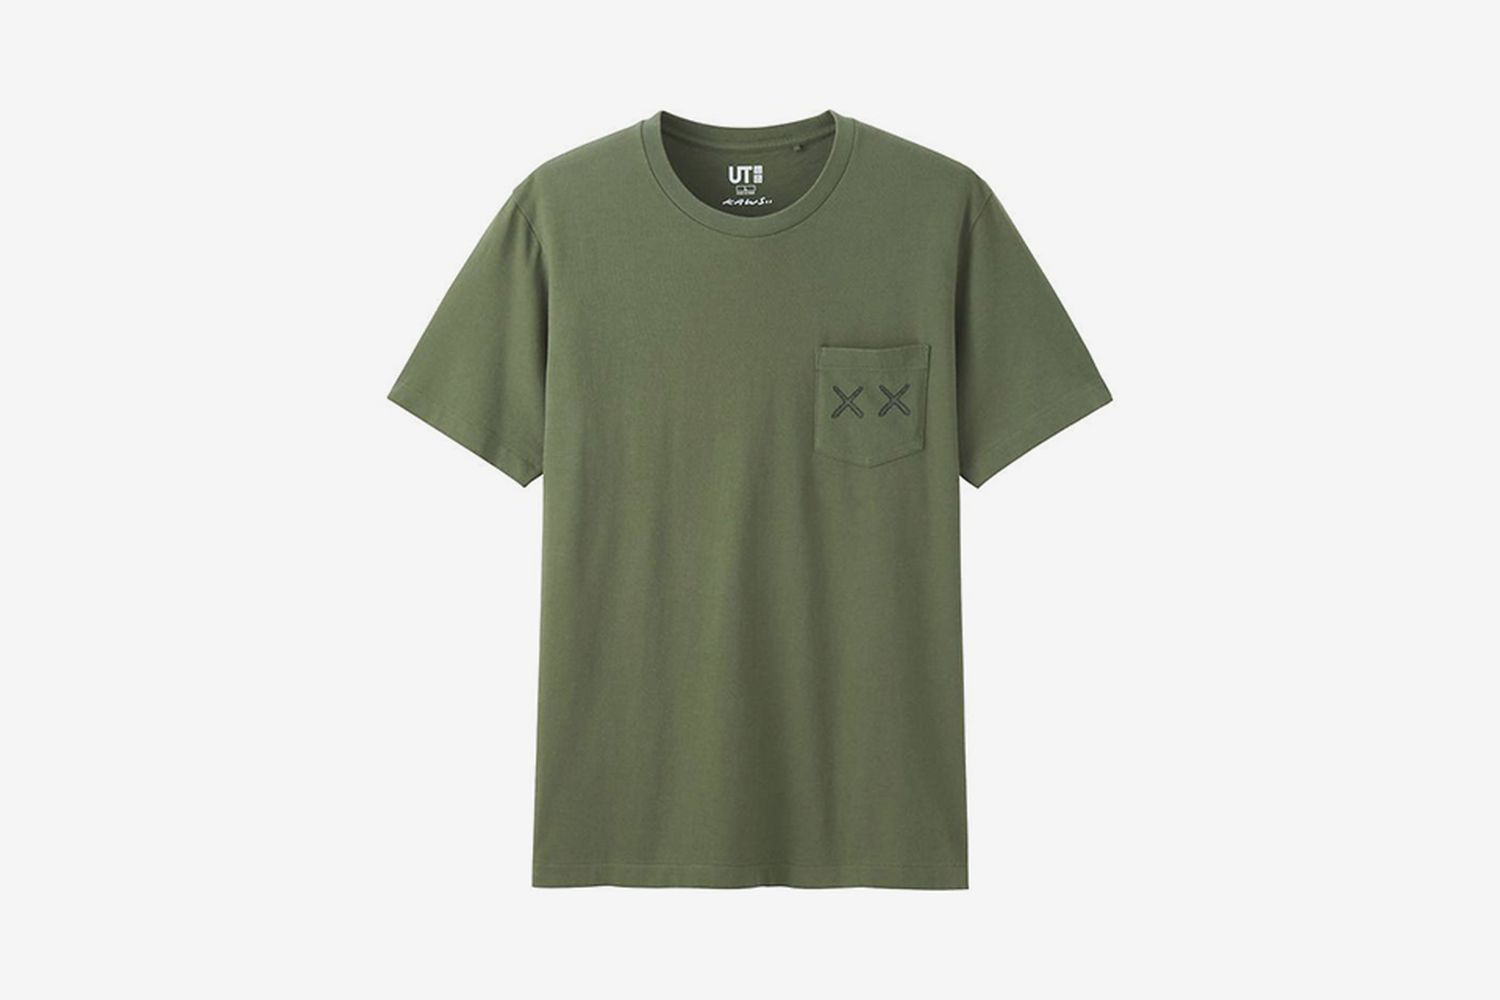 KAWS Graphic T-Shirt